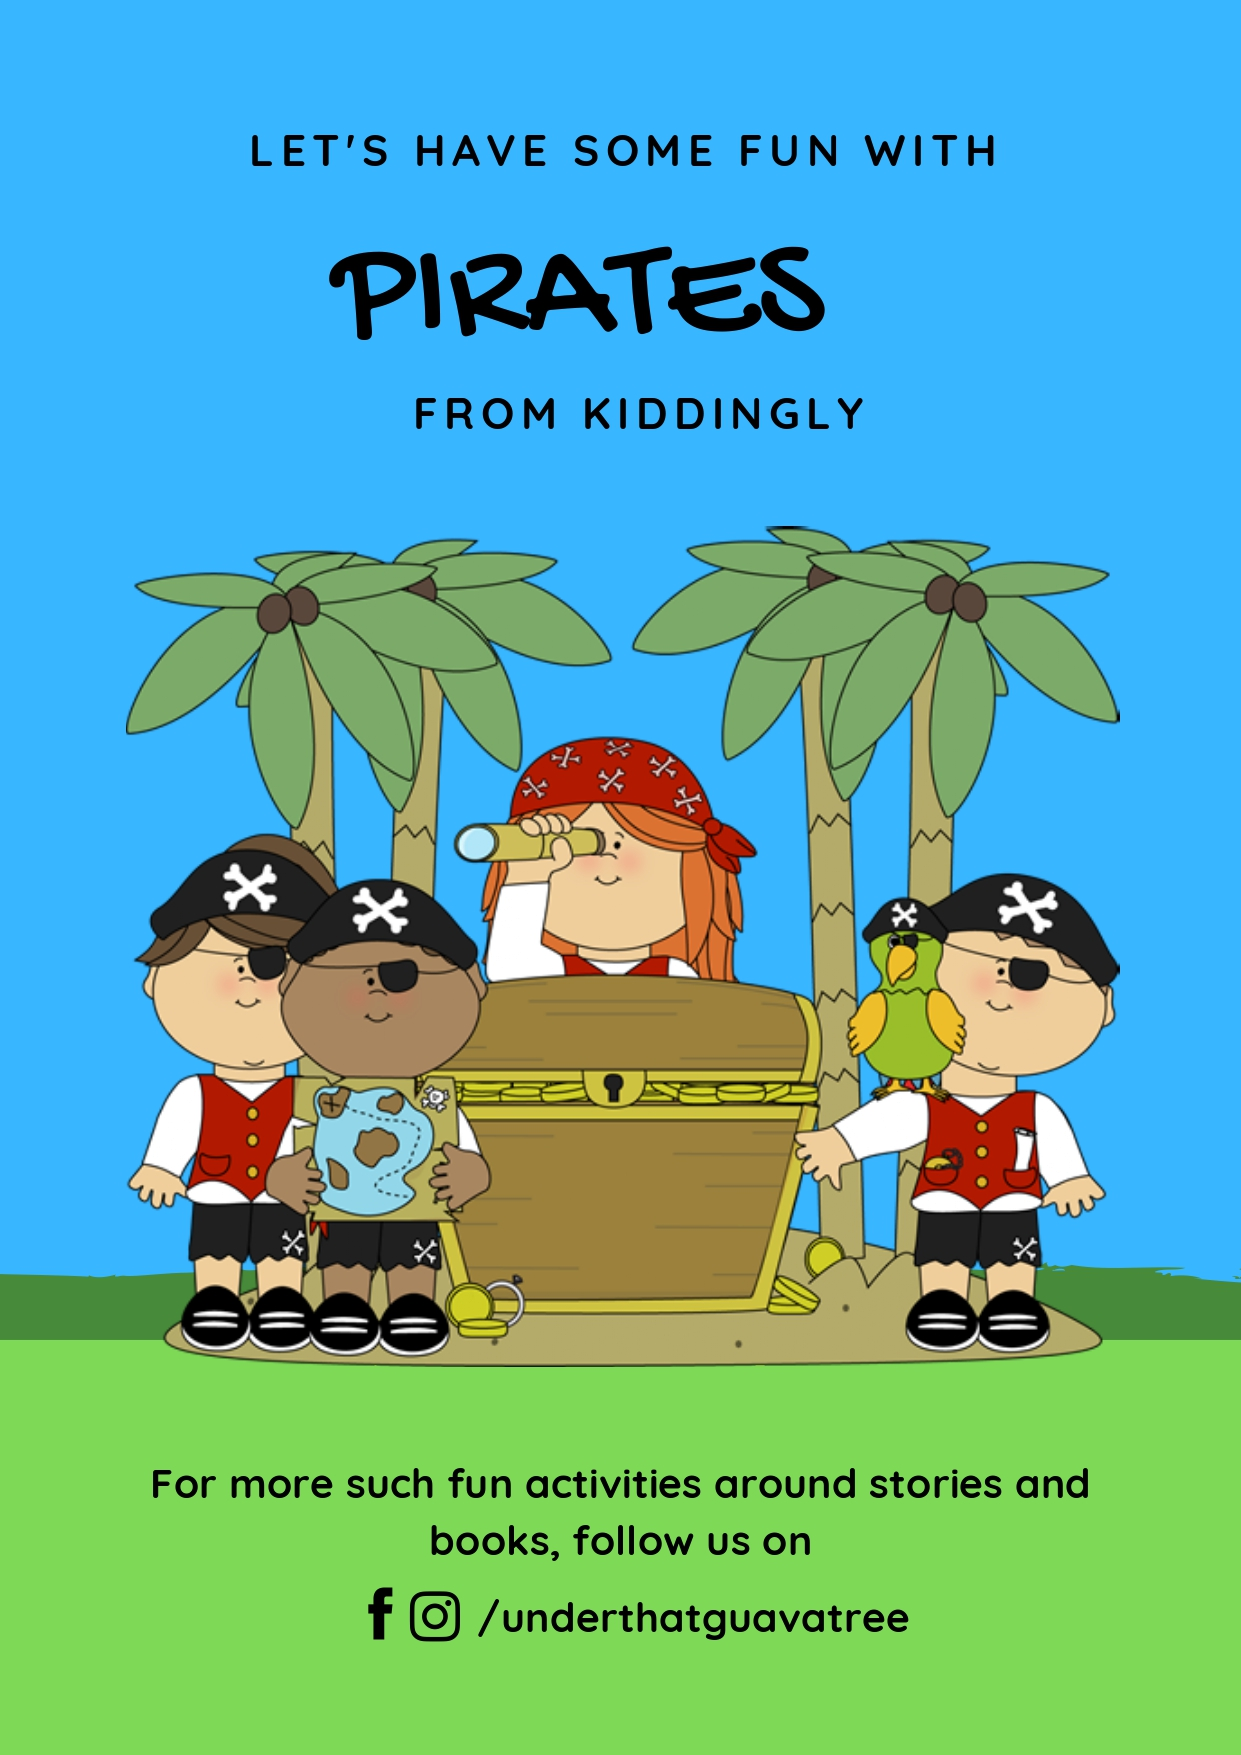 Kiddingly - Pirates By Kiddingly page 0001